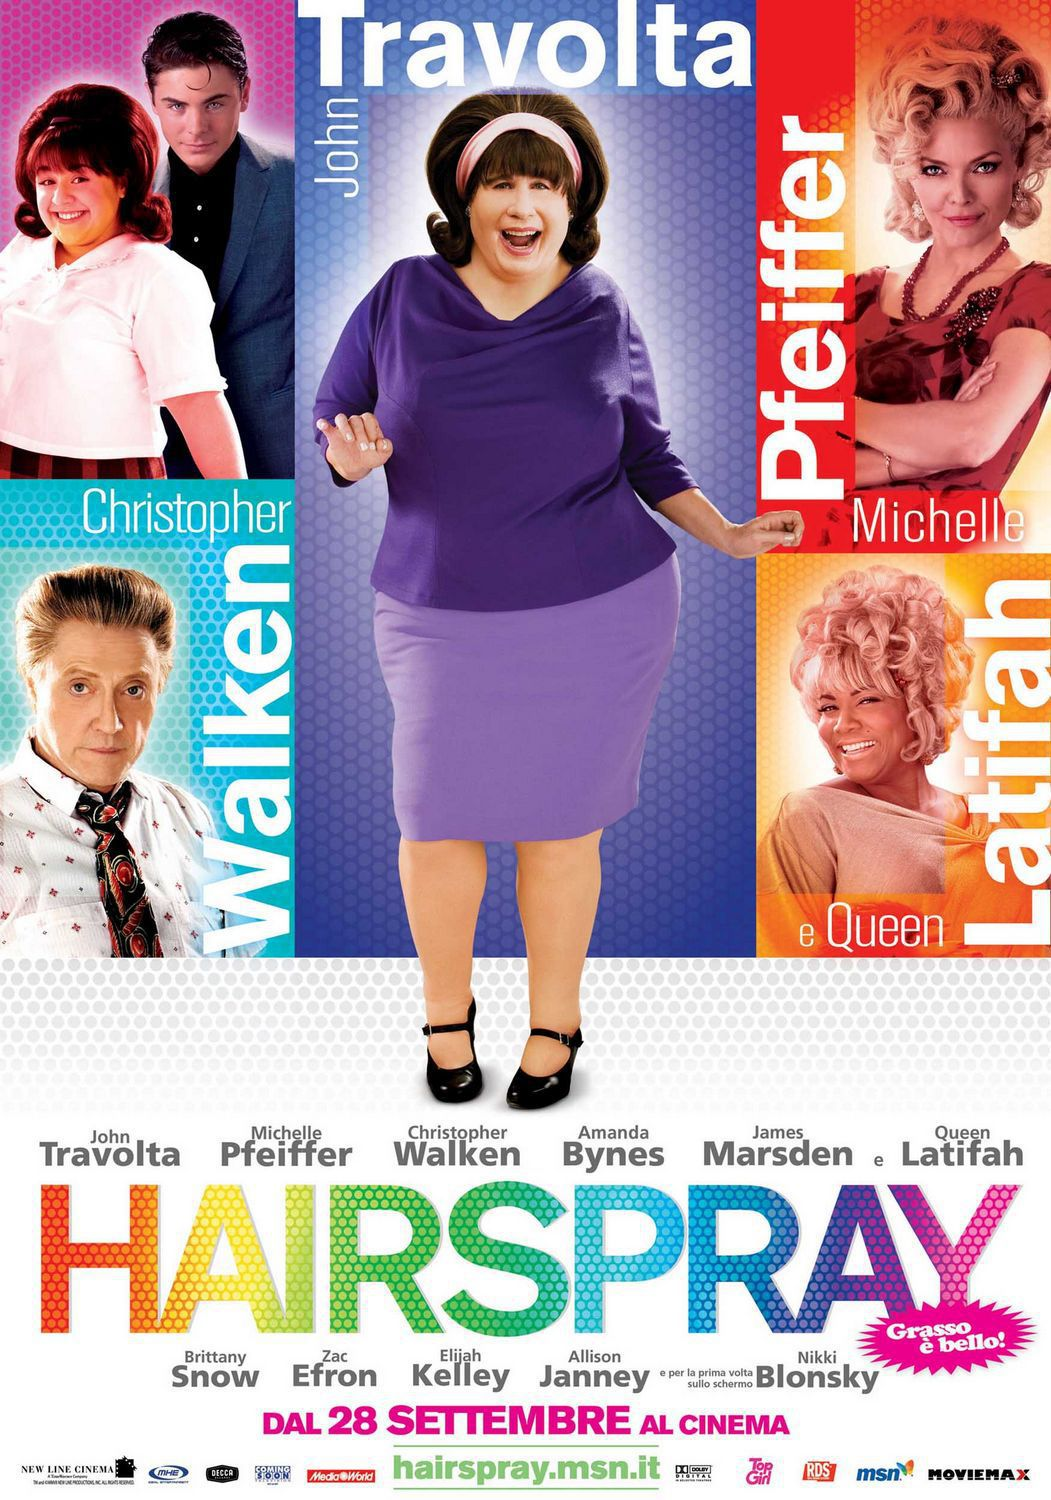 Hairspray - Grasso è Bello (2007)